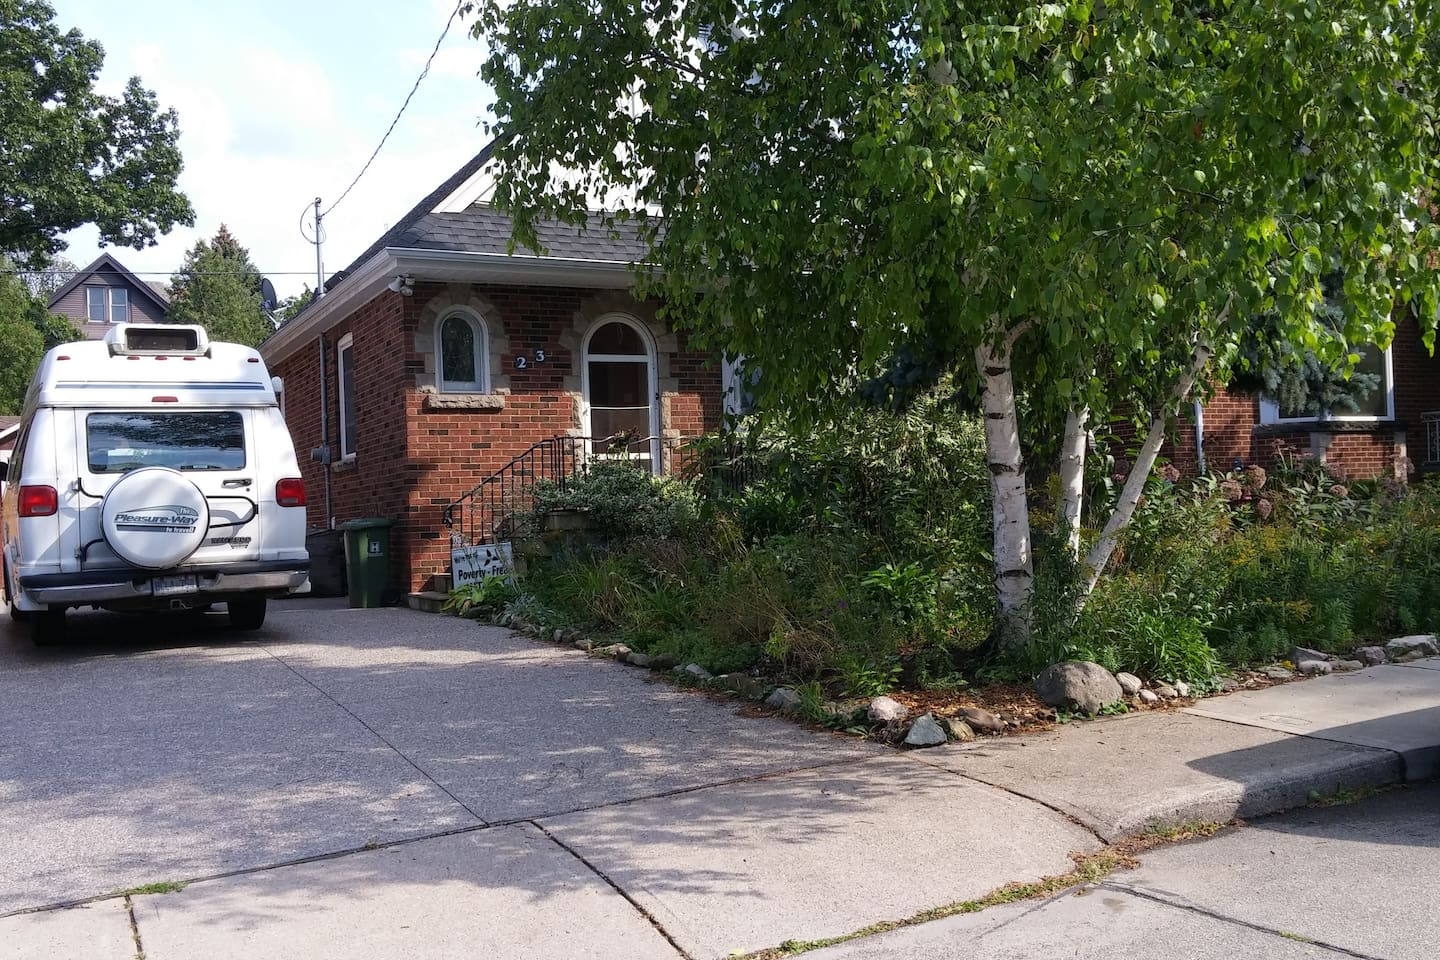 1+1/2 storey house on a cul-de-sac in a family oriented neighbourhood. Free parking.